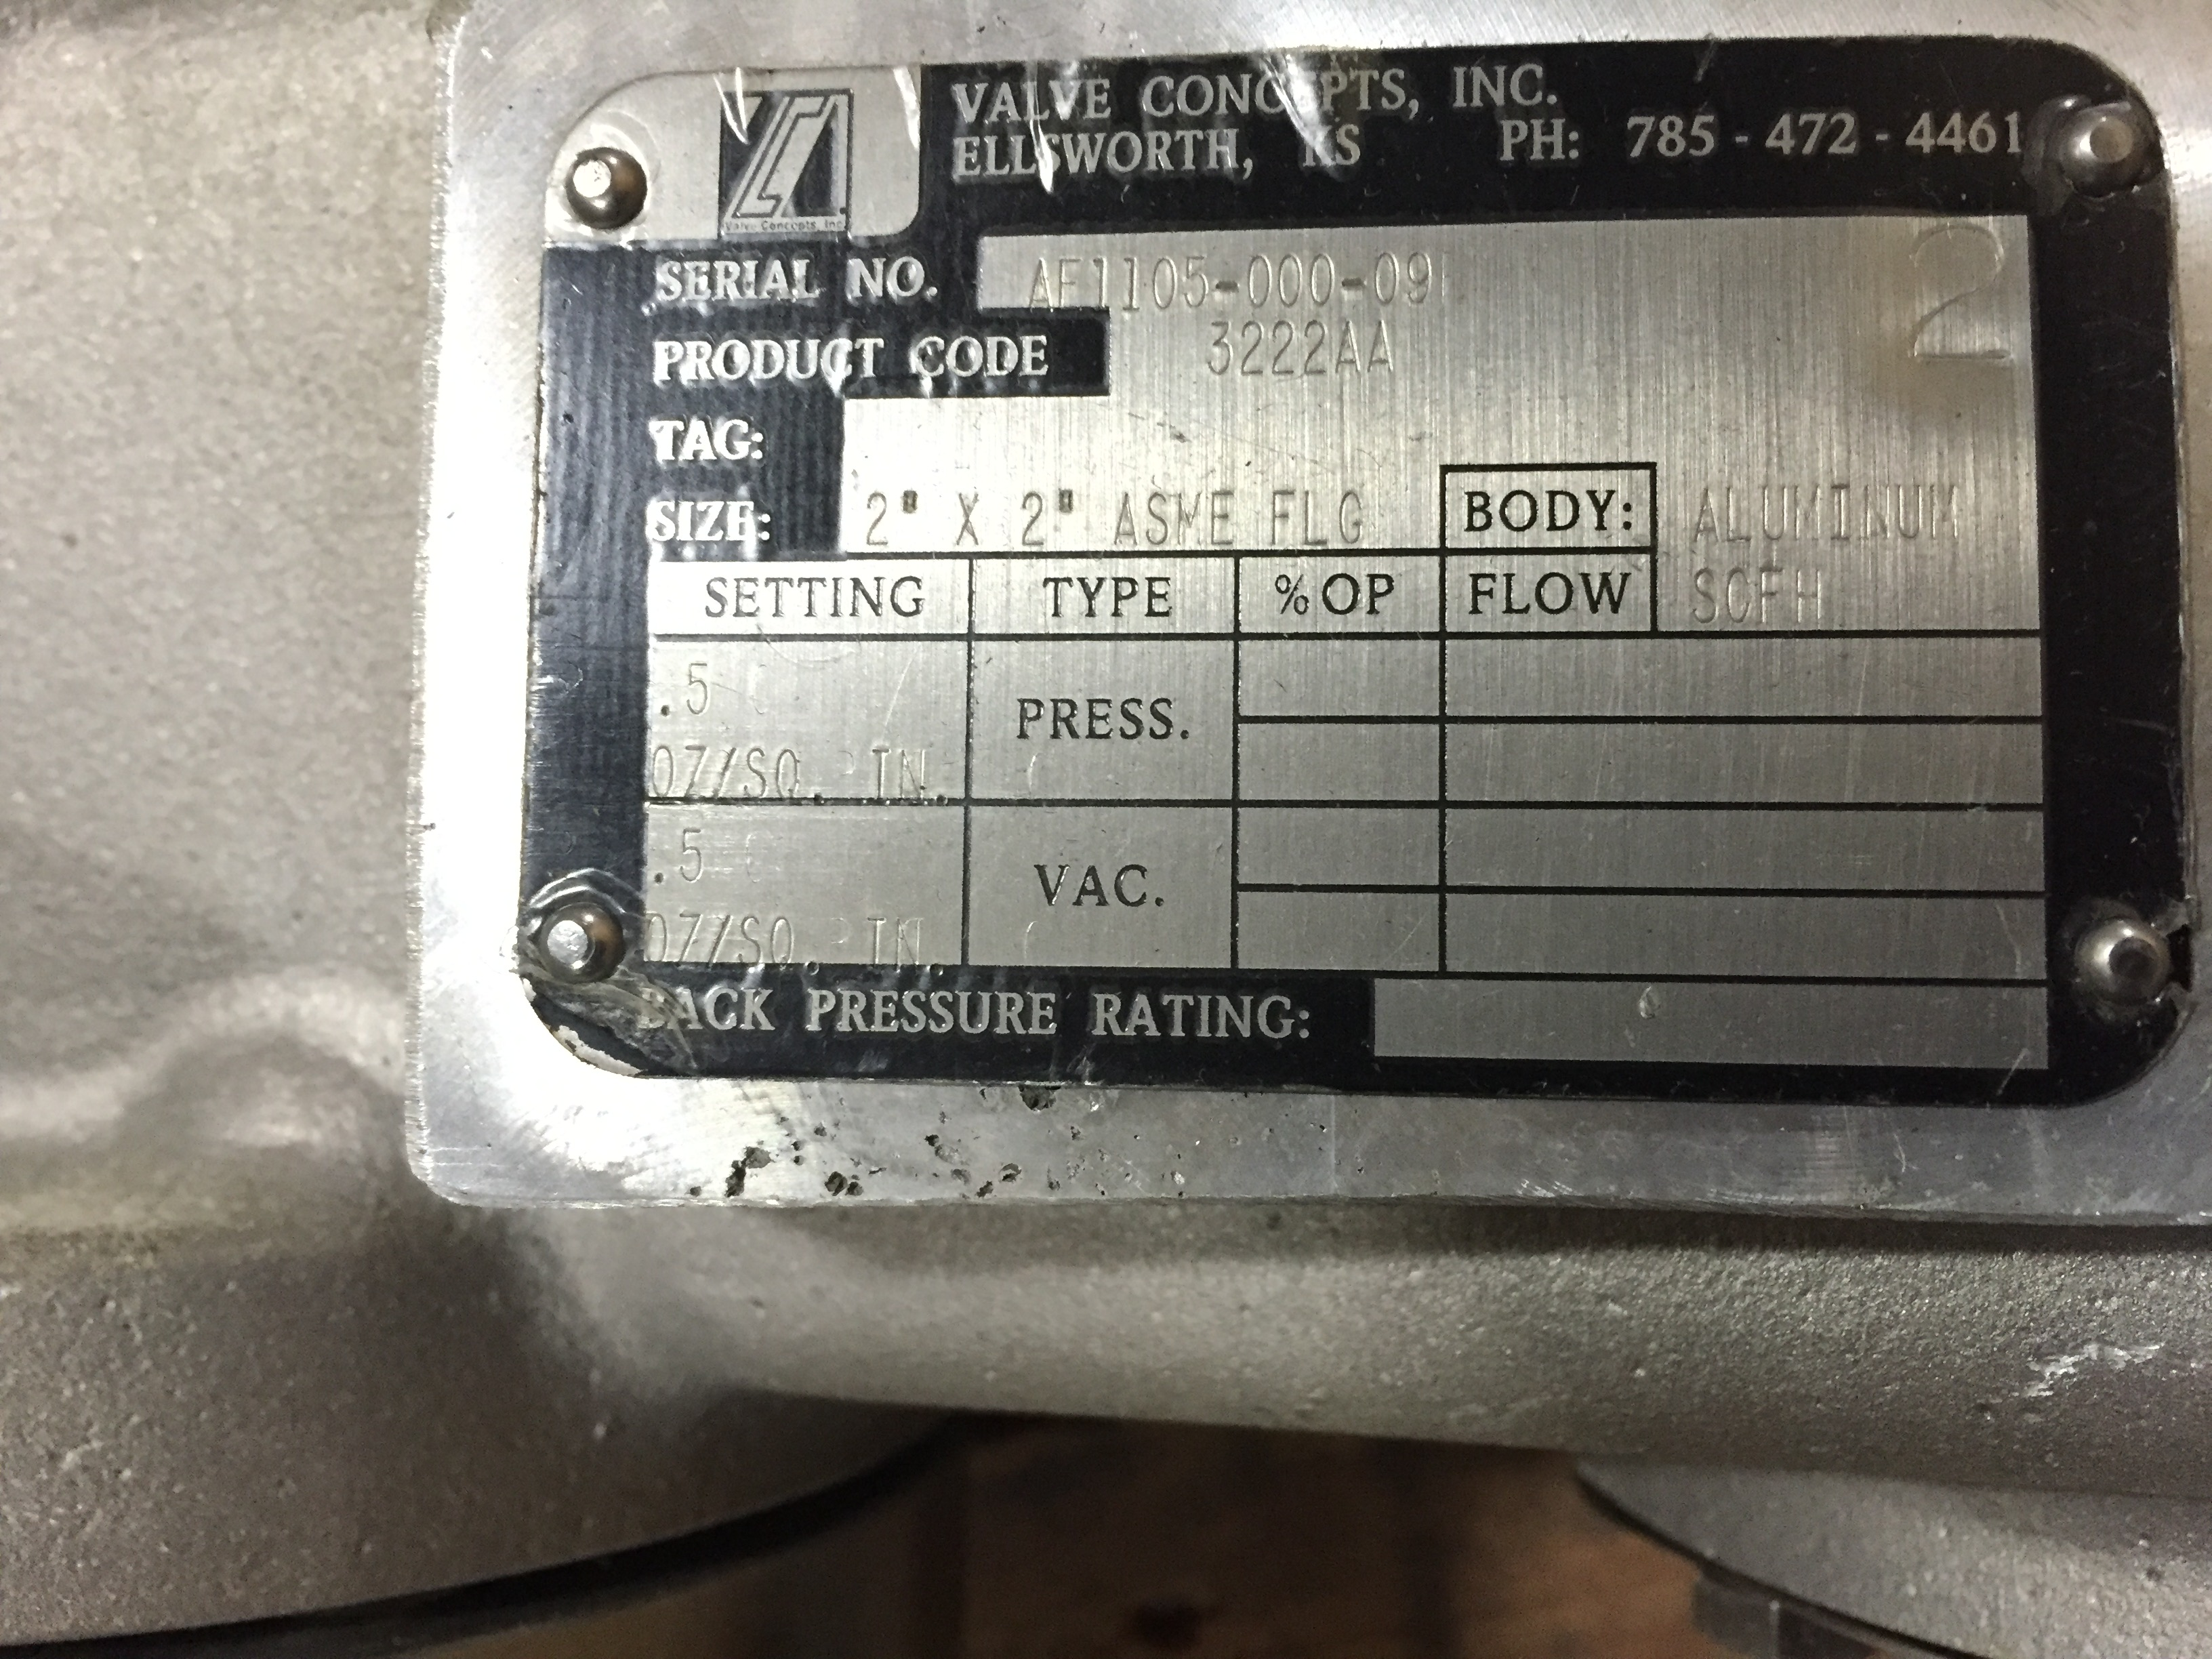 """Lot 44 - Valve Concepts inc.3222AA,2'x2"""" ASME FLANGE FLOW SCPH, SN:AE1105-000-09 :equipment located at"""